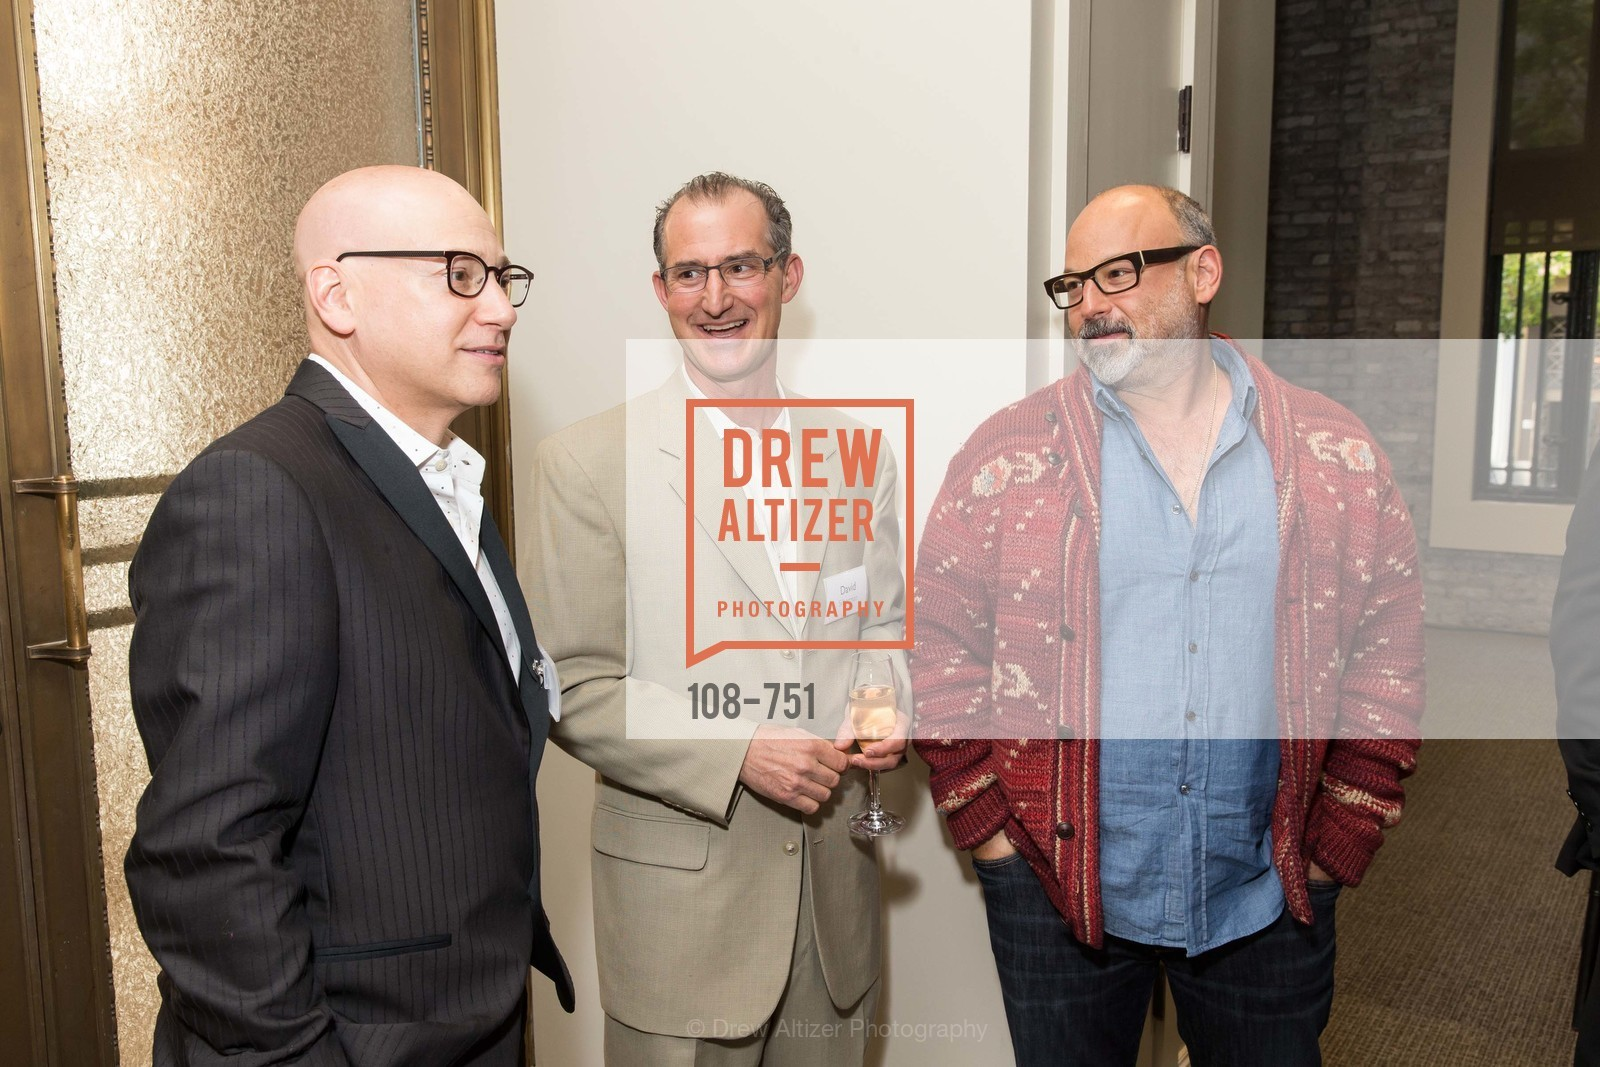 Evan Handler, David Silberman, Robert Rosenheck, CENTER FOR ENVIRONMENTAL HEALTH (CEH) 2015 Gala, Bently Reserve, May 28th, 2015,Drew Altizer, Drew Altizer Photography, full-service agency, private events, San Francisco photographer, photographer california